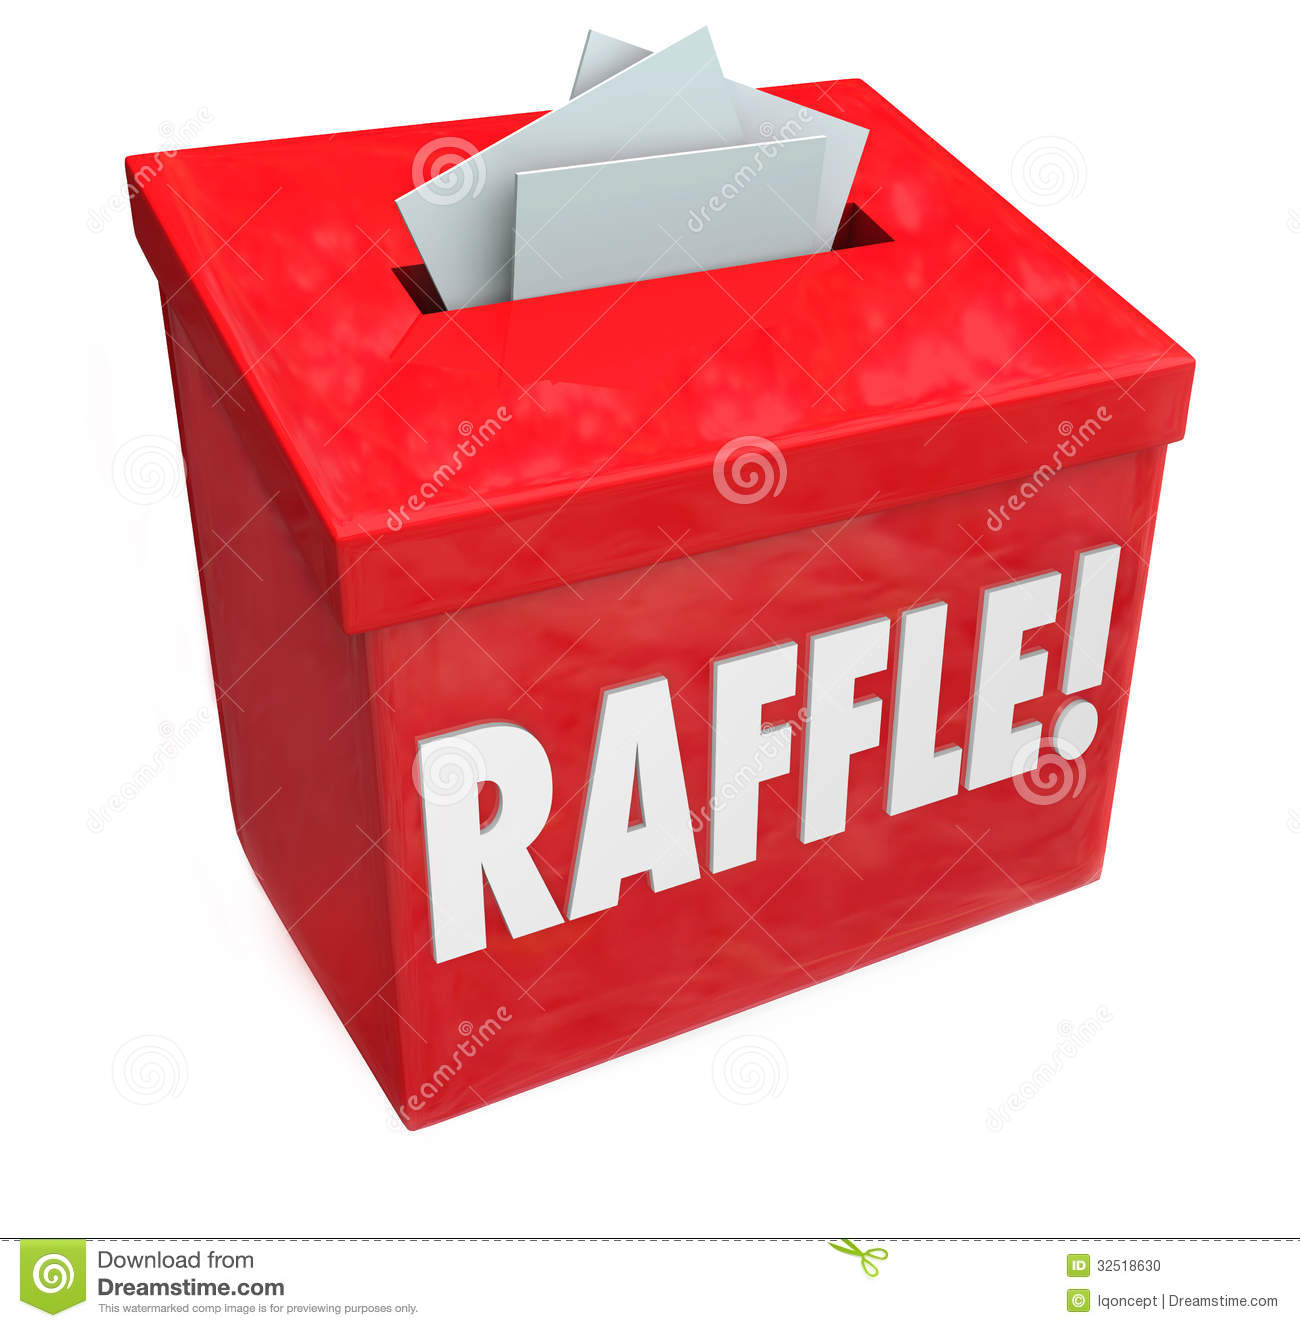 50 50 raffle enter to win box drop your tickets dropping tickets inside a